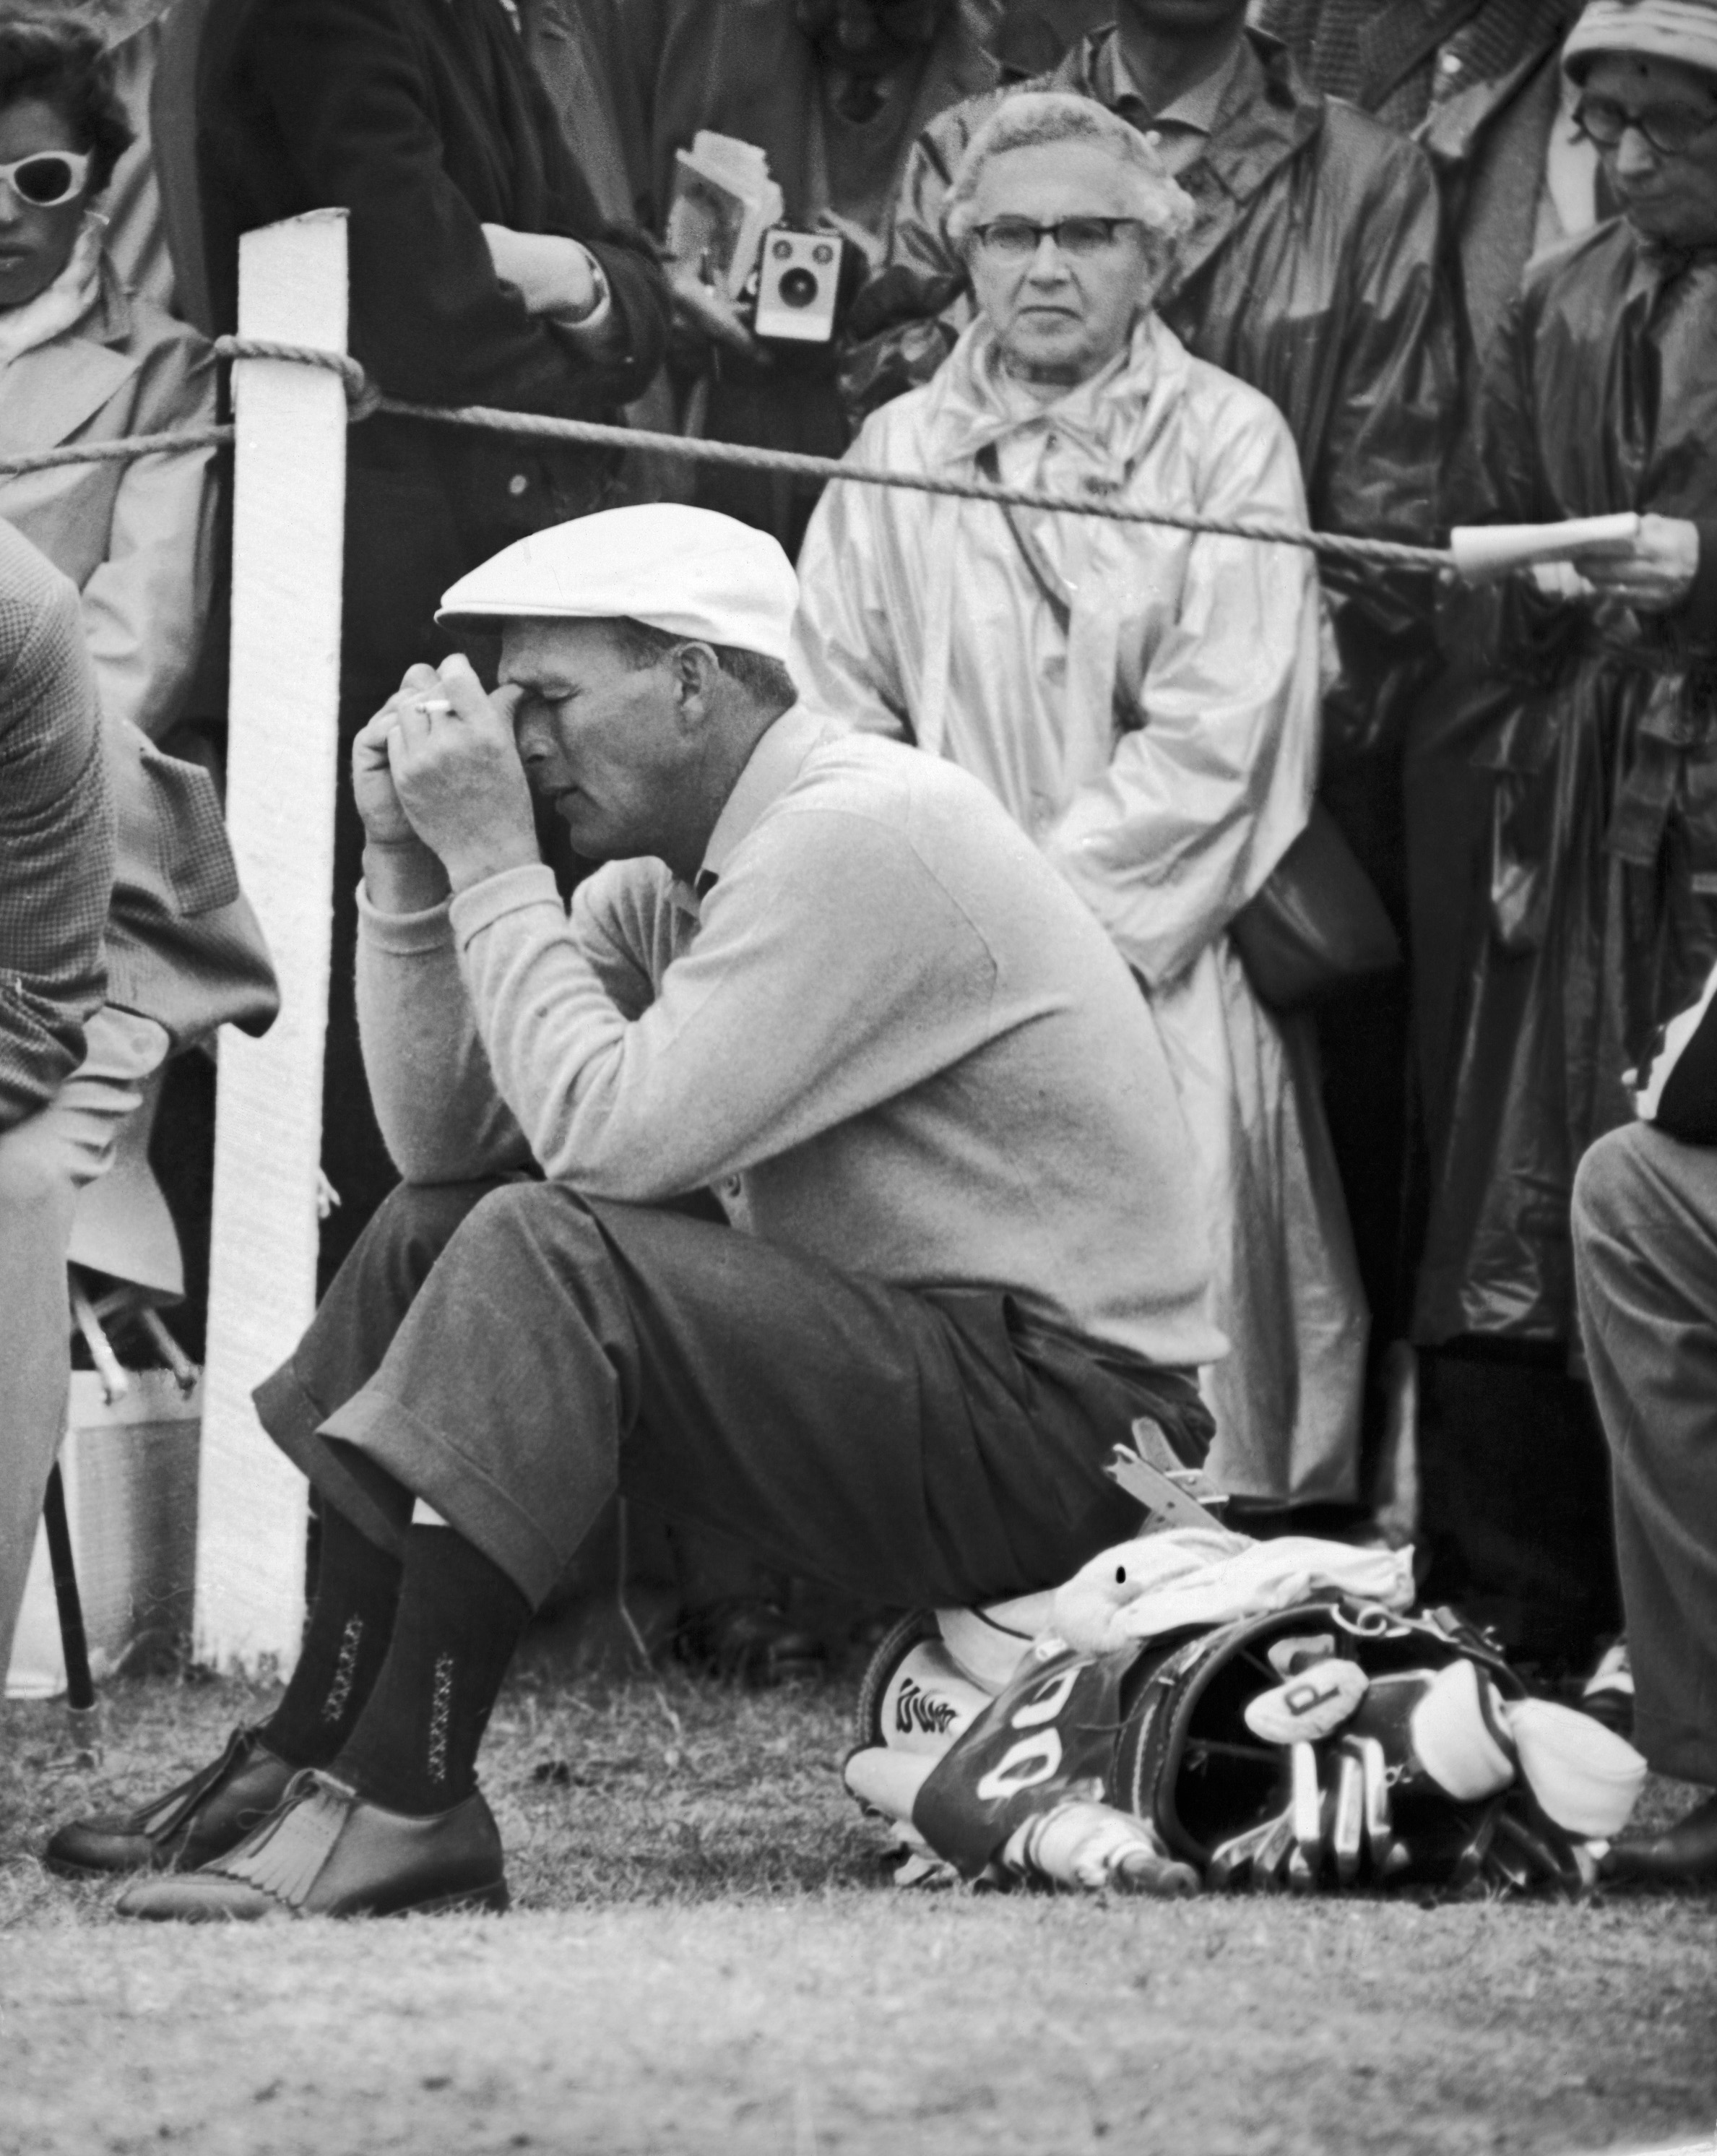 FILE - In this July 5, 1960 file photo, Arnold Palmer, U.S. Open Champion, sits on his golf bag and relaxes halfway through his troublesome second round of qualifying play in the British Open Championship at St. Andrews, Scotland. At that point, the 10th